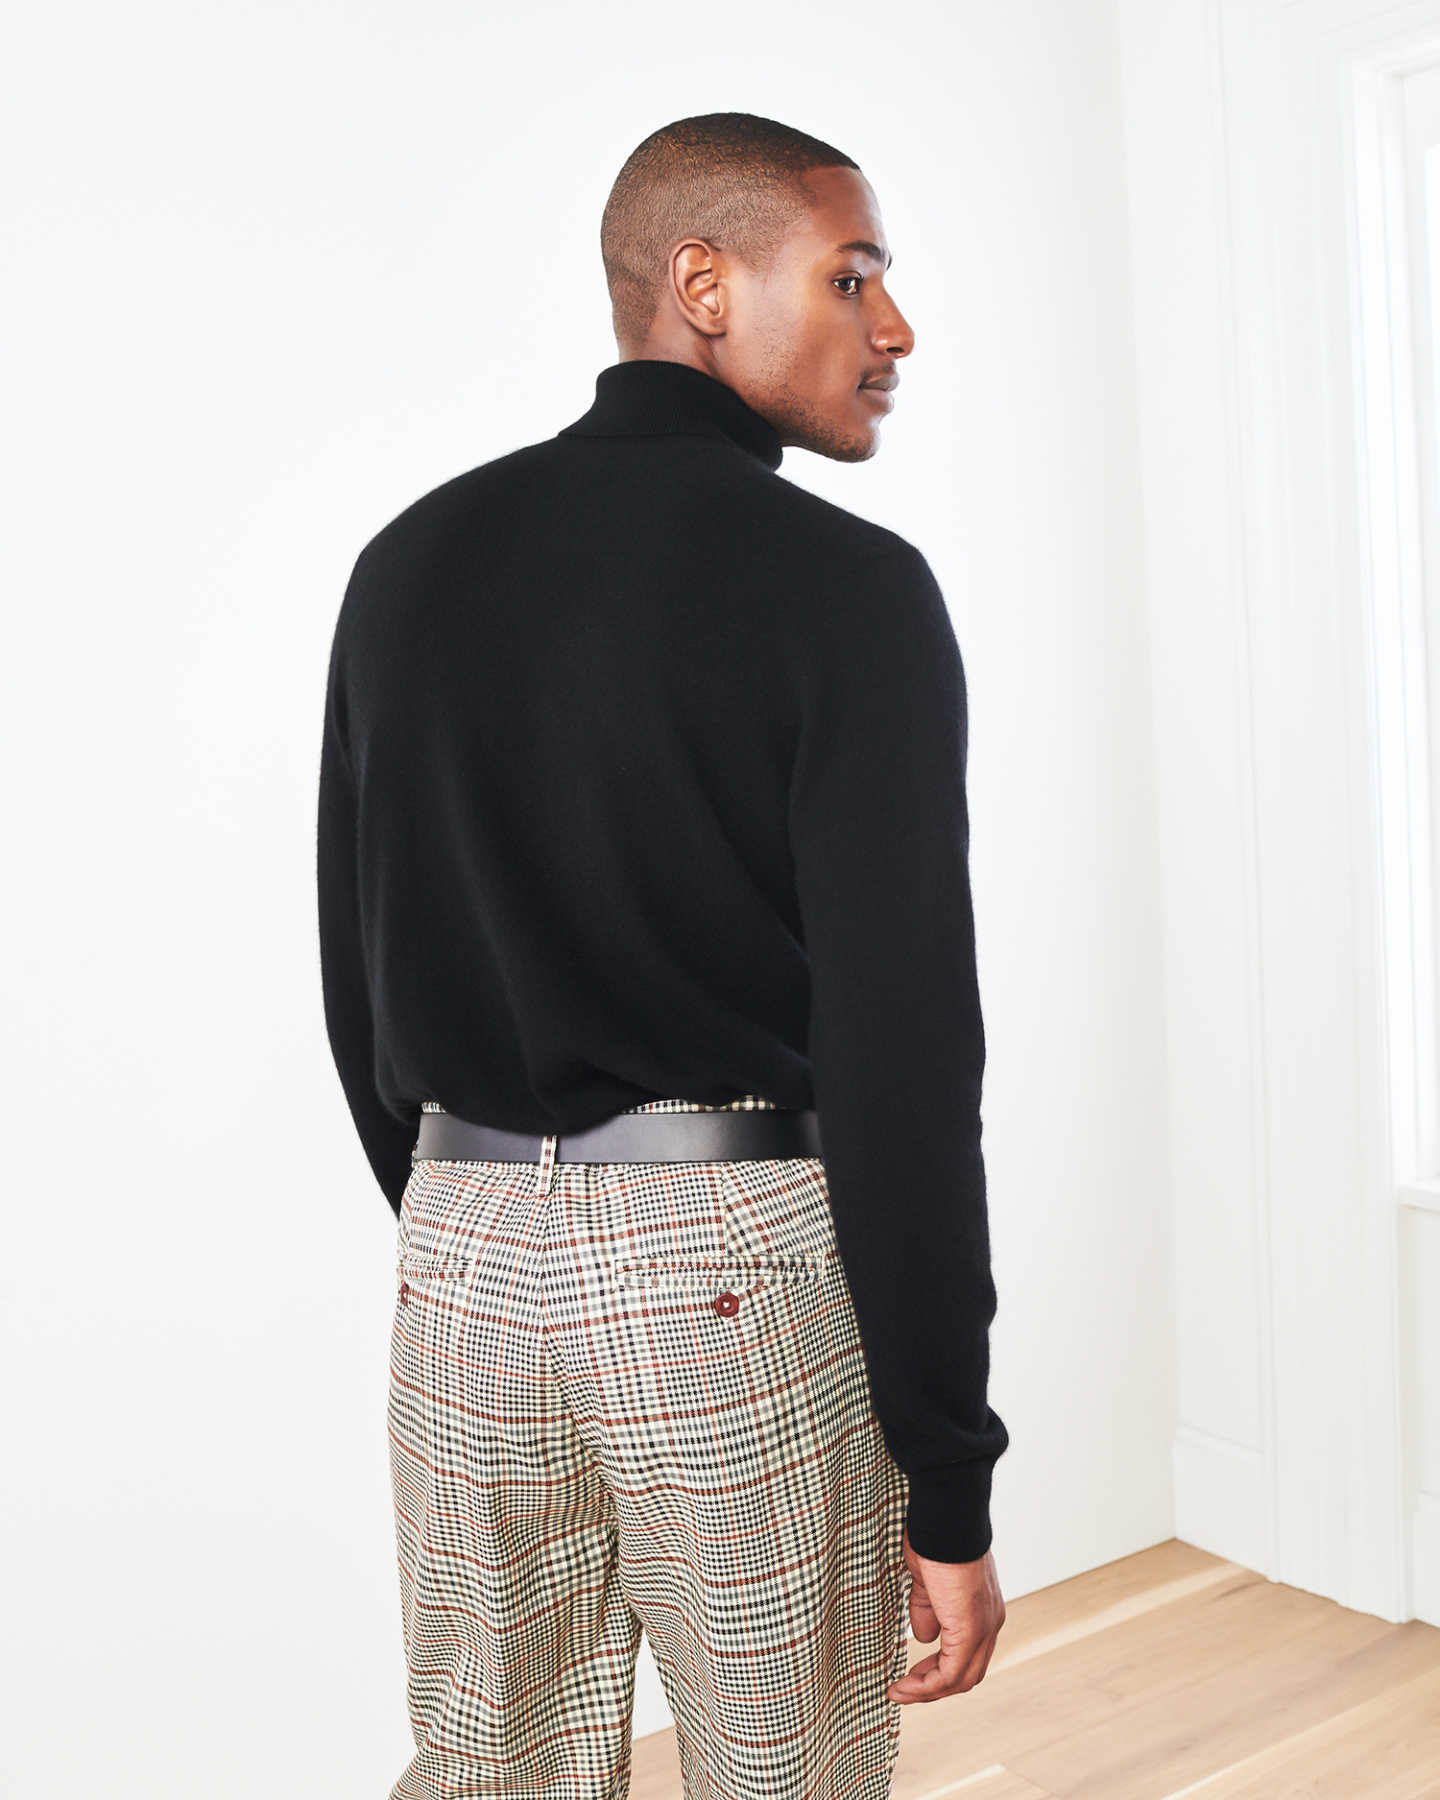 Man wearing men's black cashmere turtleneck sweater from behind